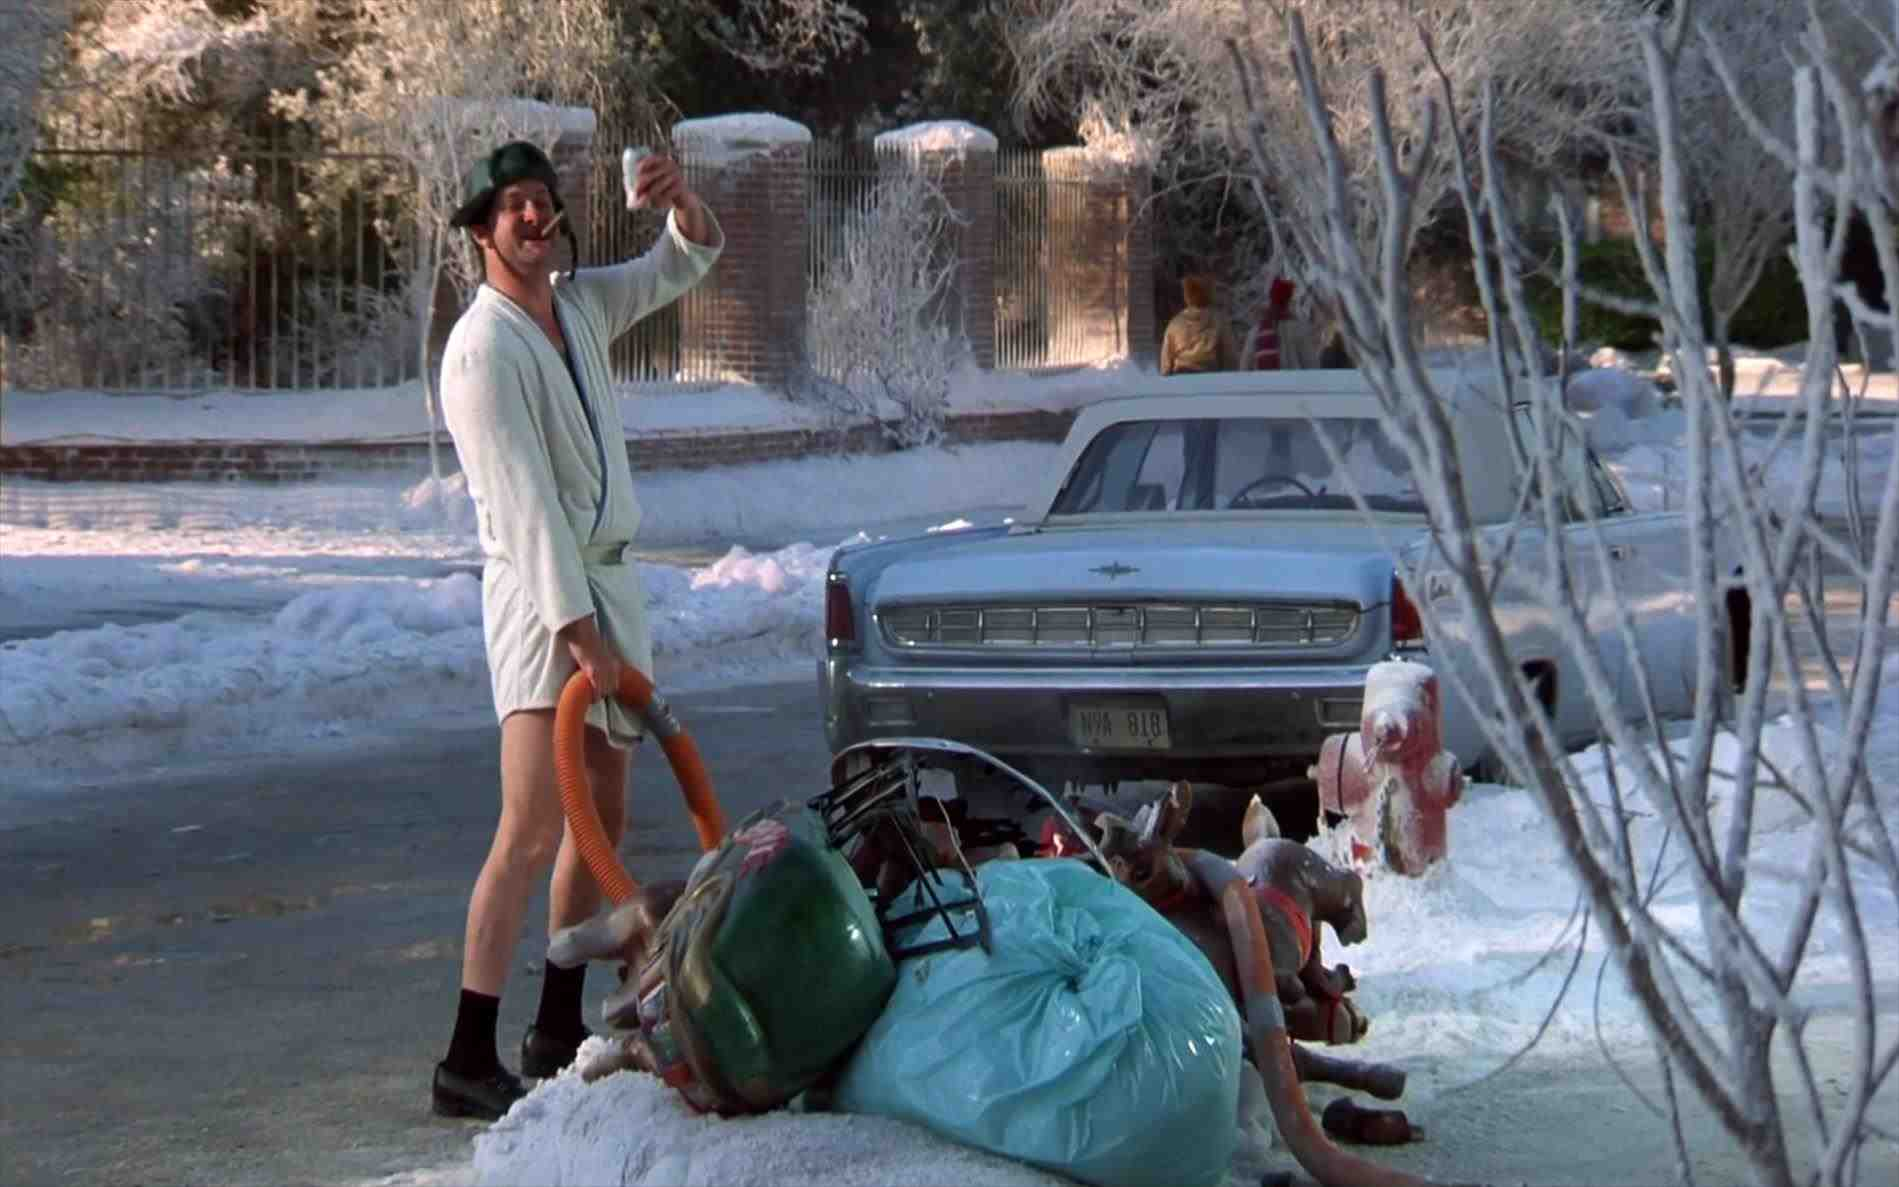 sweat-suit-great-lampoon-griswold-todd-christmas-vacation-movie-cousin-eddie-and-margo-sauna-sweat-suit-great-lampoon-griswold-national-s-where.jpg